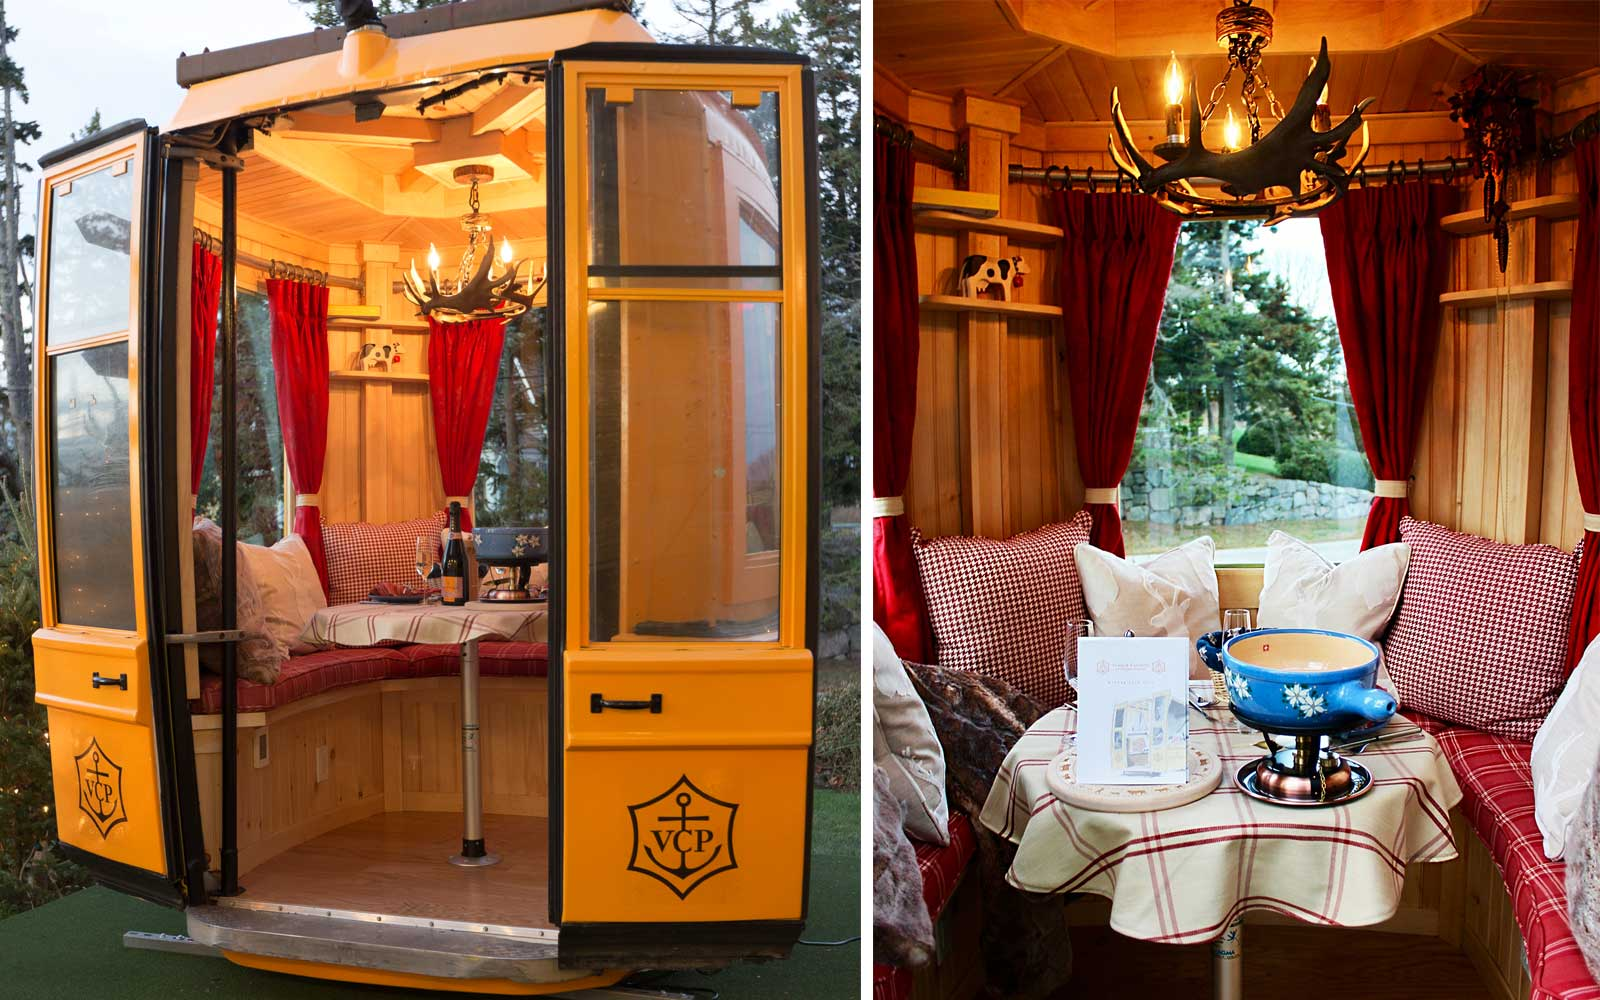 How to Eat Fondue in a Heated Gondola Instead of Skiing This Winter